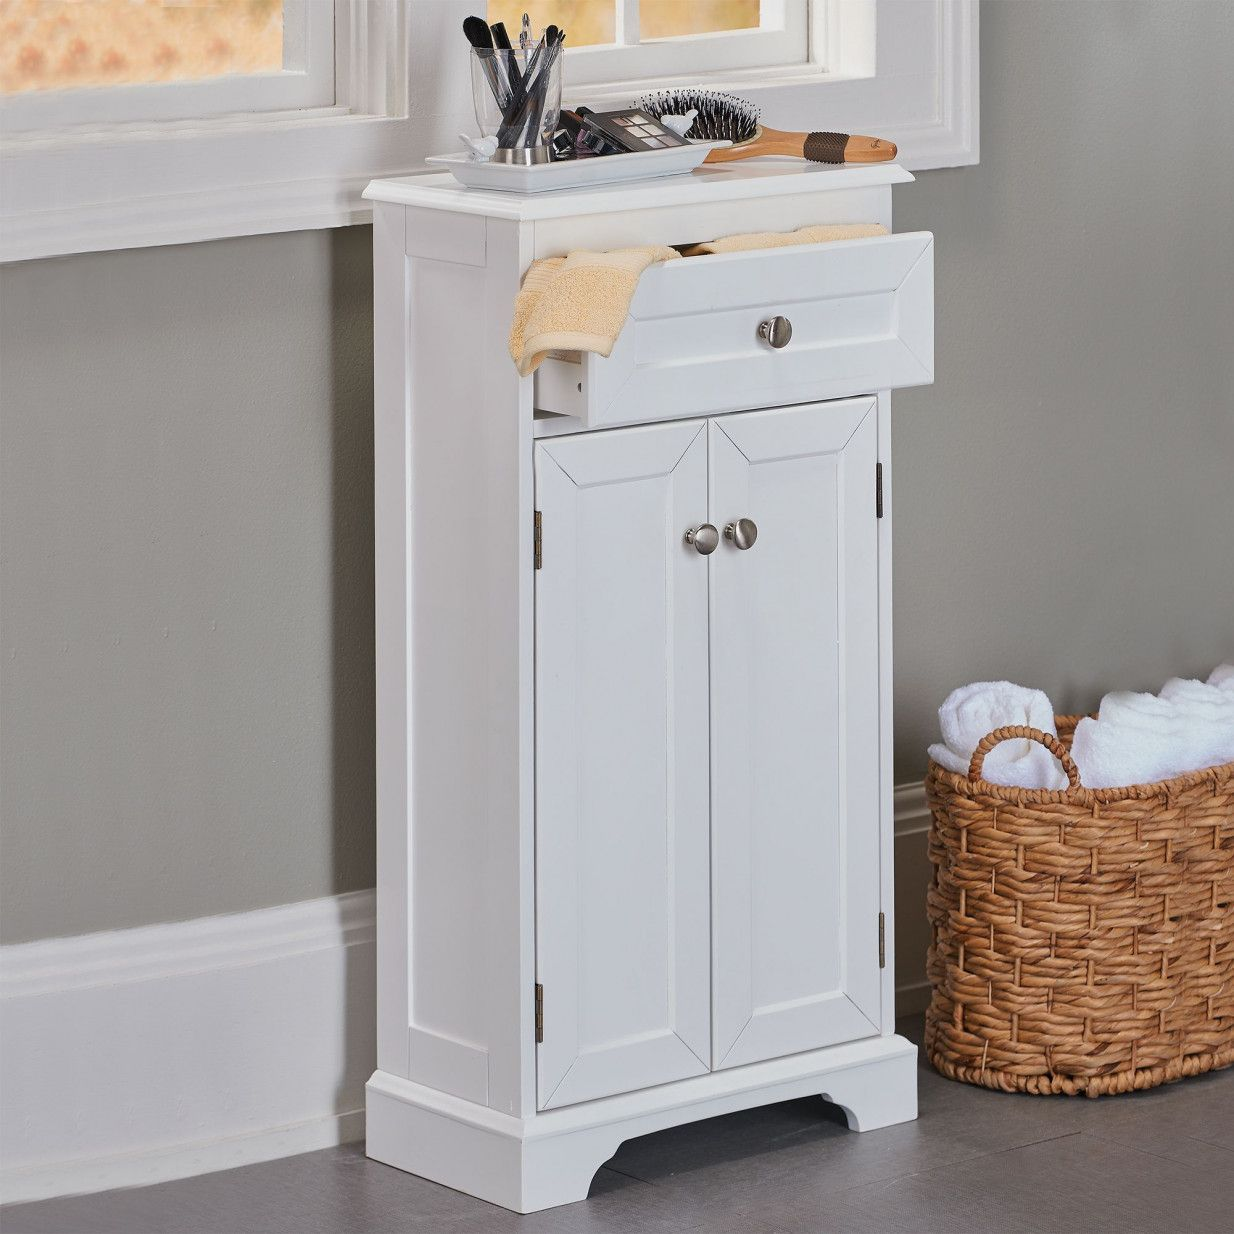 55+ Small White Bathroom Cabinet Floor - Best Paint for Interior ...